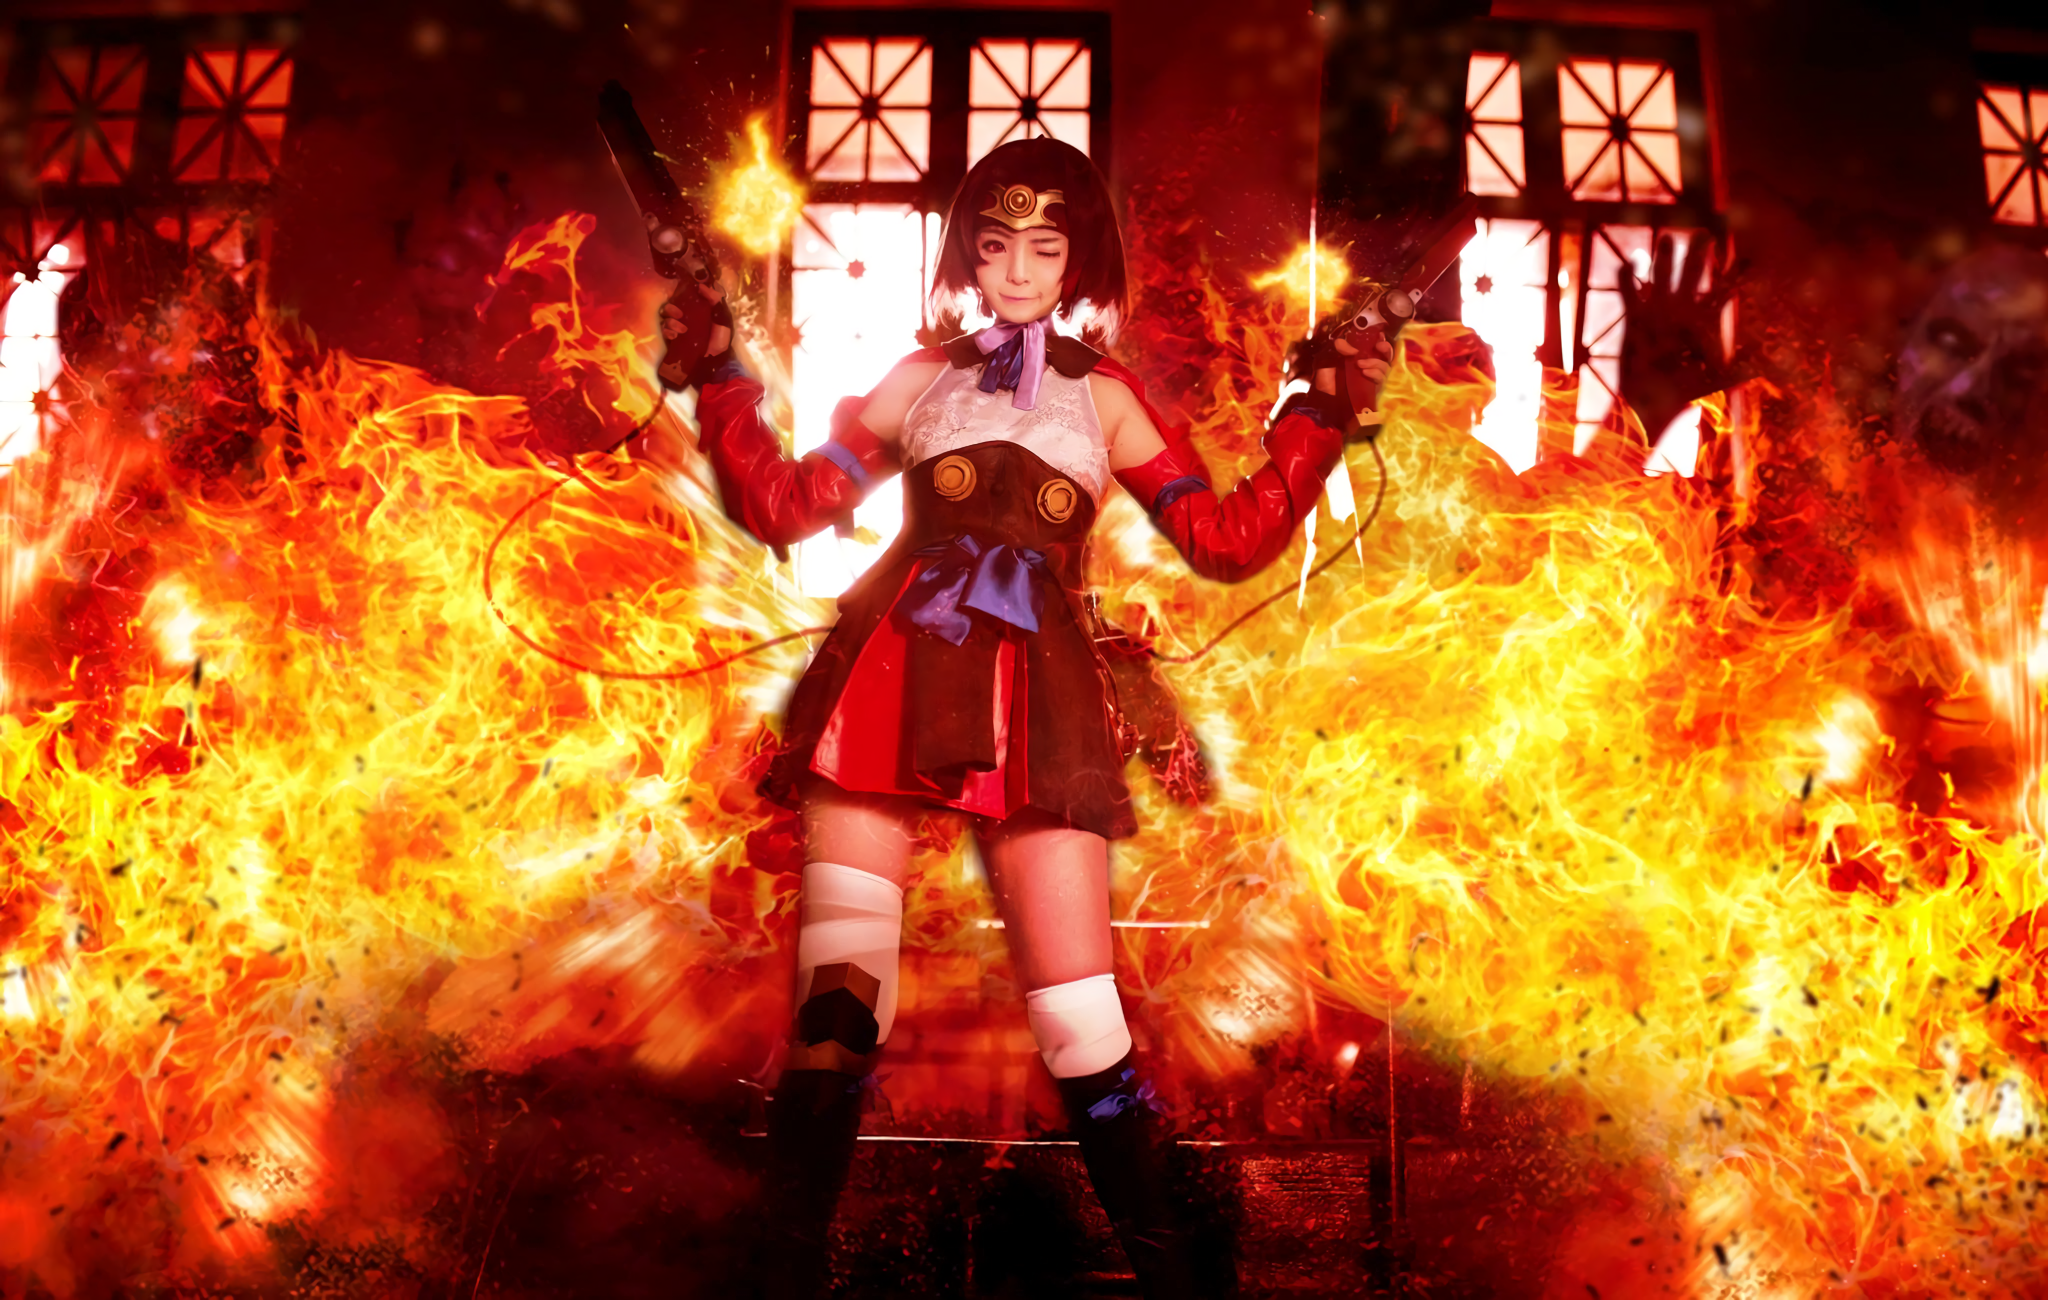 Kabaneri Of The Iron Fortress Wallpaper: Cosplay HD Wallpaper